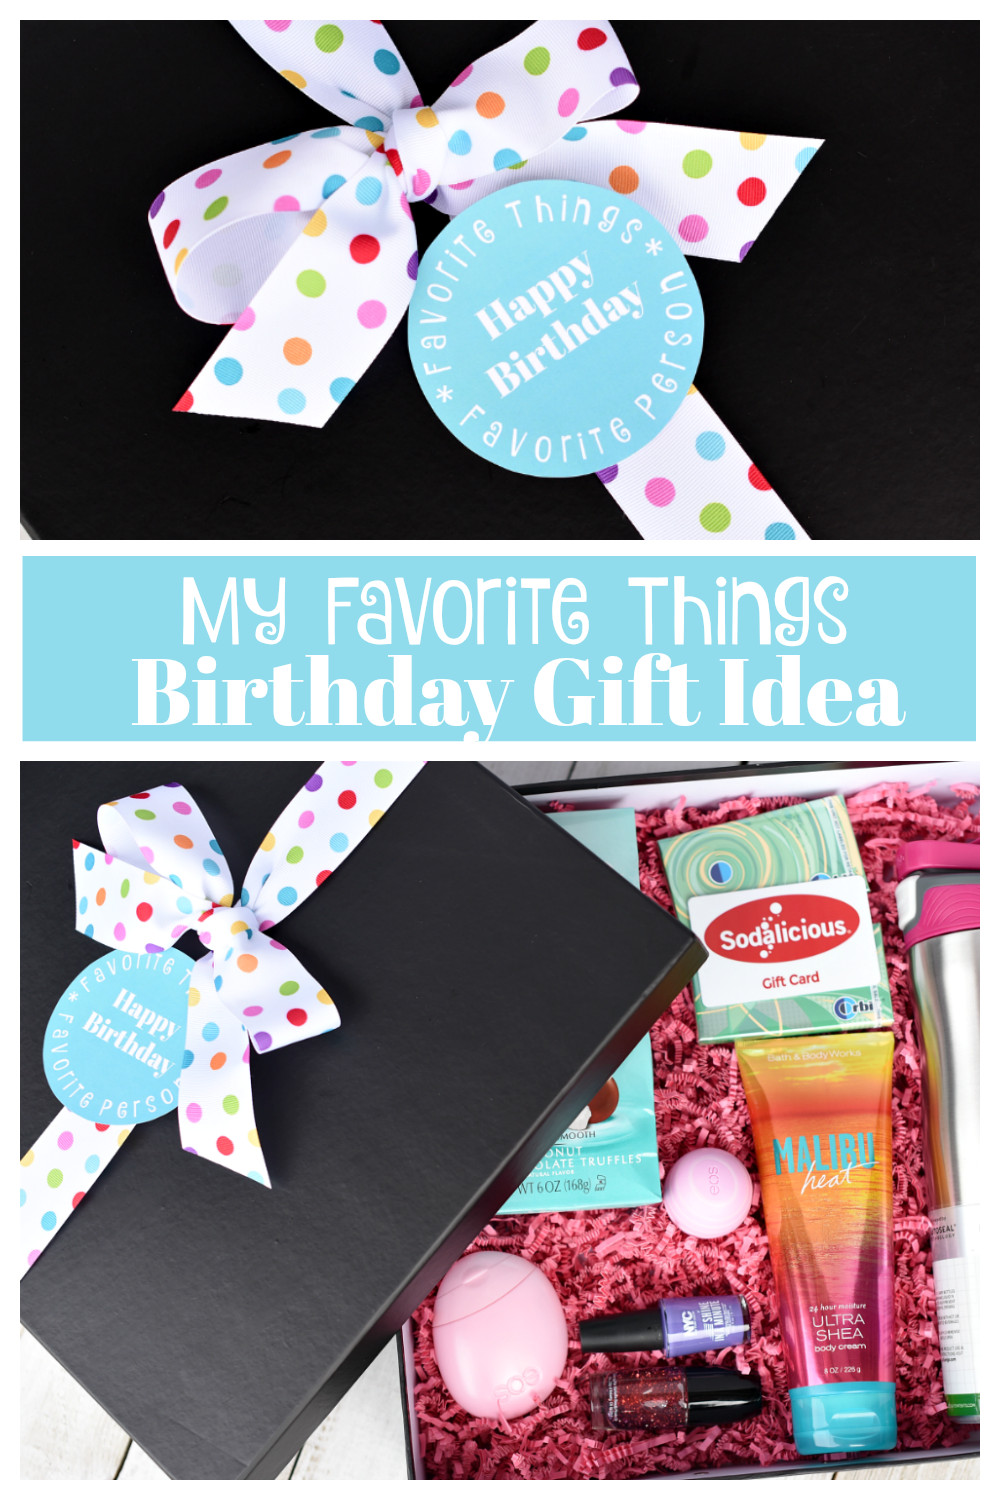 Bday Gift Ideas For Best Friend  My Favorite Things Birthday Gifts for Your Best Friend